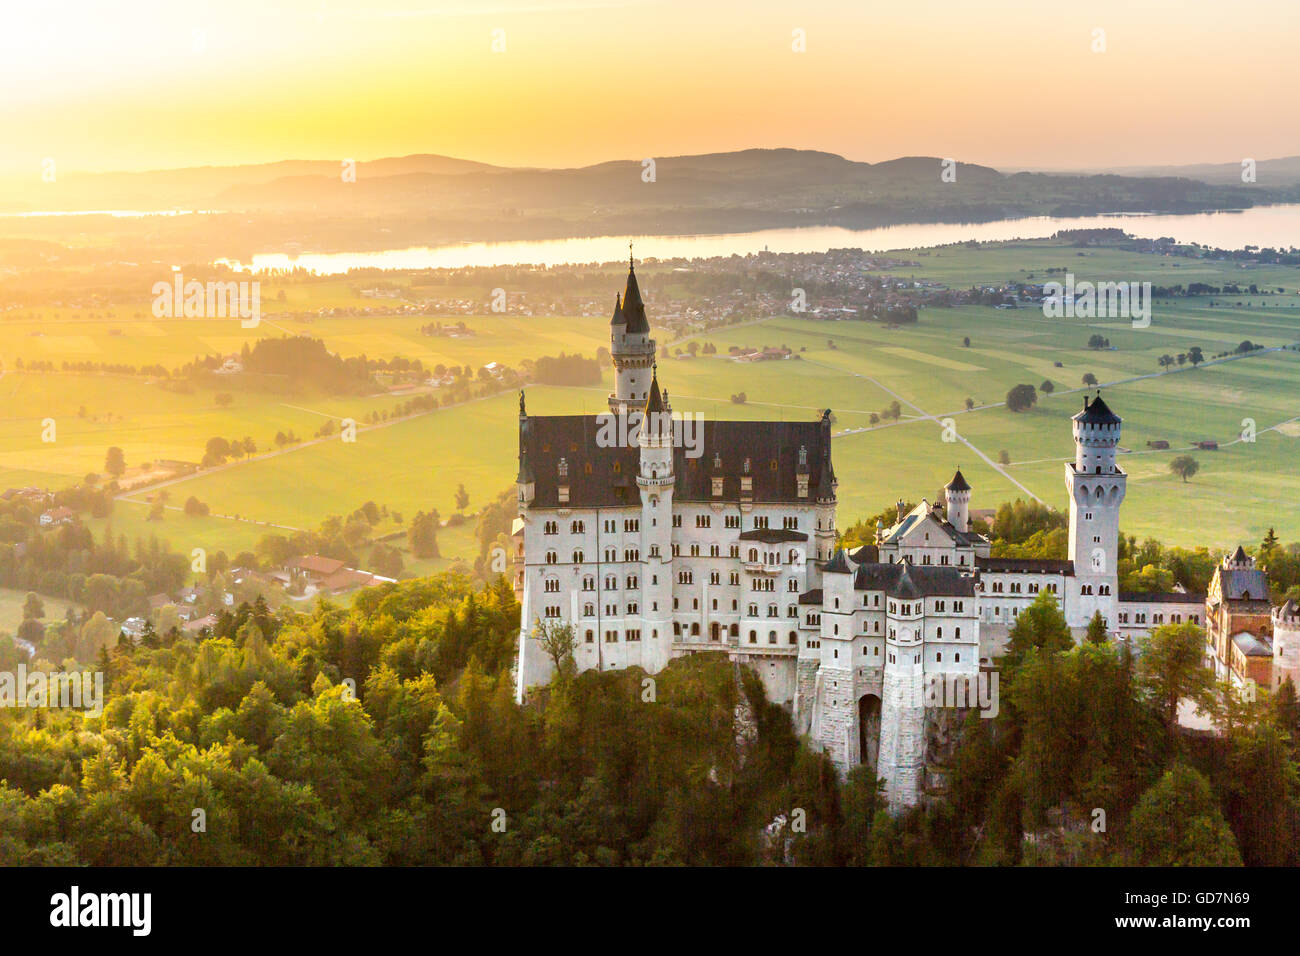 Beautiful summer romantic view of the Neuschwanstein castle at Fussen Bavaria, Germany - Stock Image